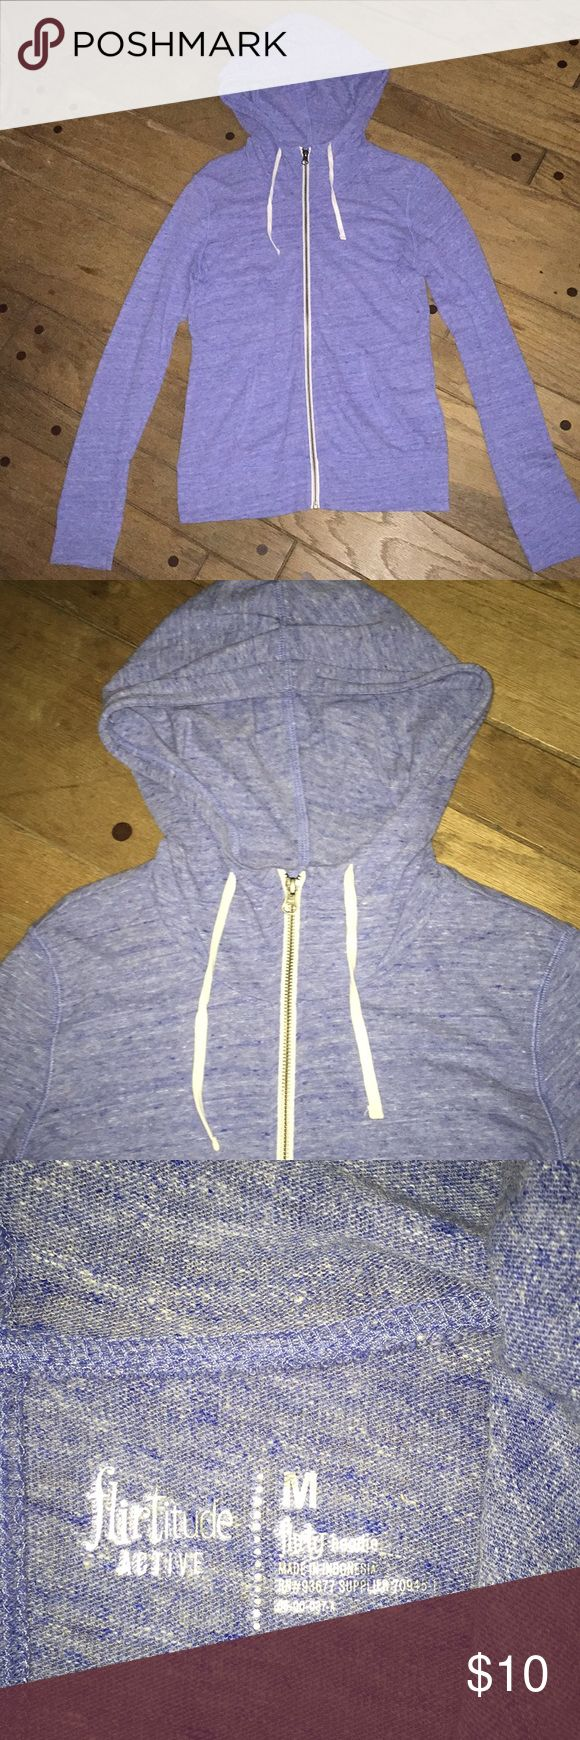 NWOT Hoodie Brand new without tags!! Heathered light periwinkle blue zip up hoodie sweatshirt. Lightweight material. Cowl neck style. Front pockets. White zipper and drawstrings for contrast. Super adorable hoodie! Women's size medium. Tops Sweatshirts & Hoodies